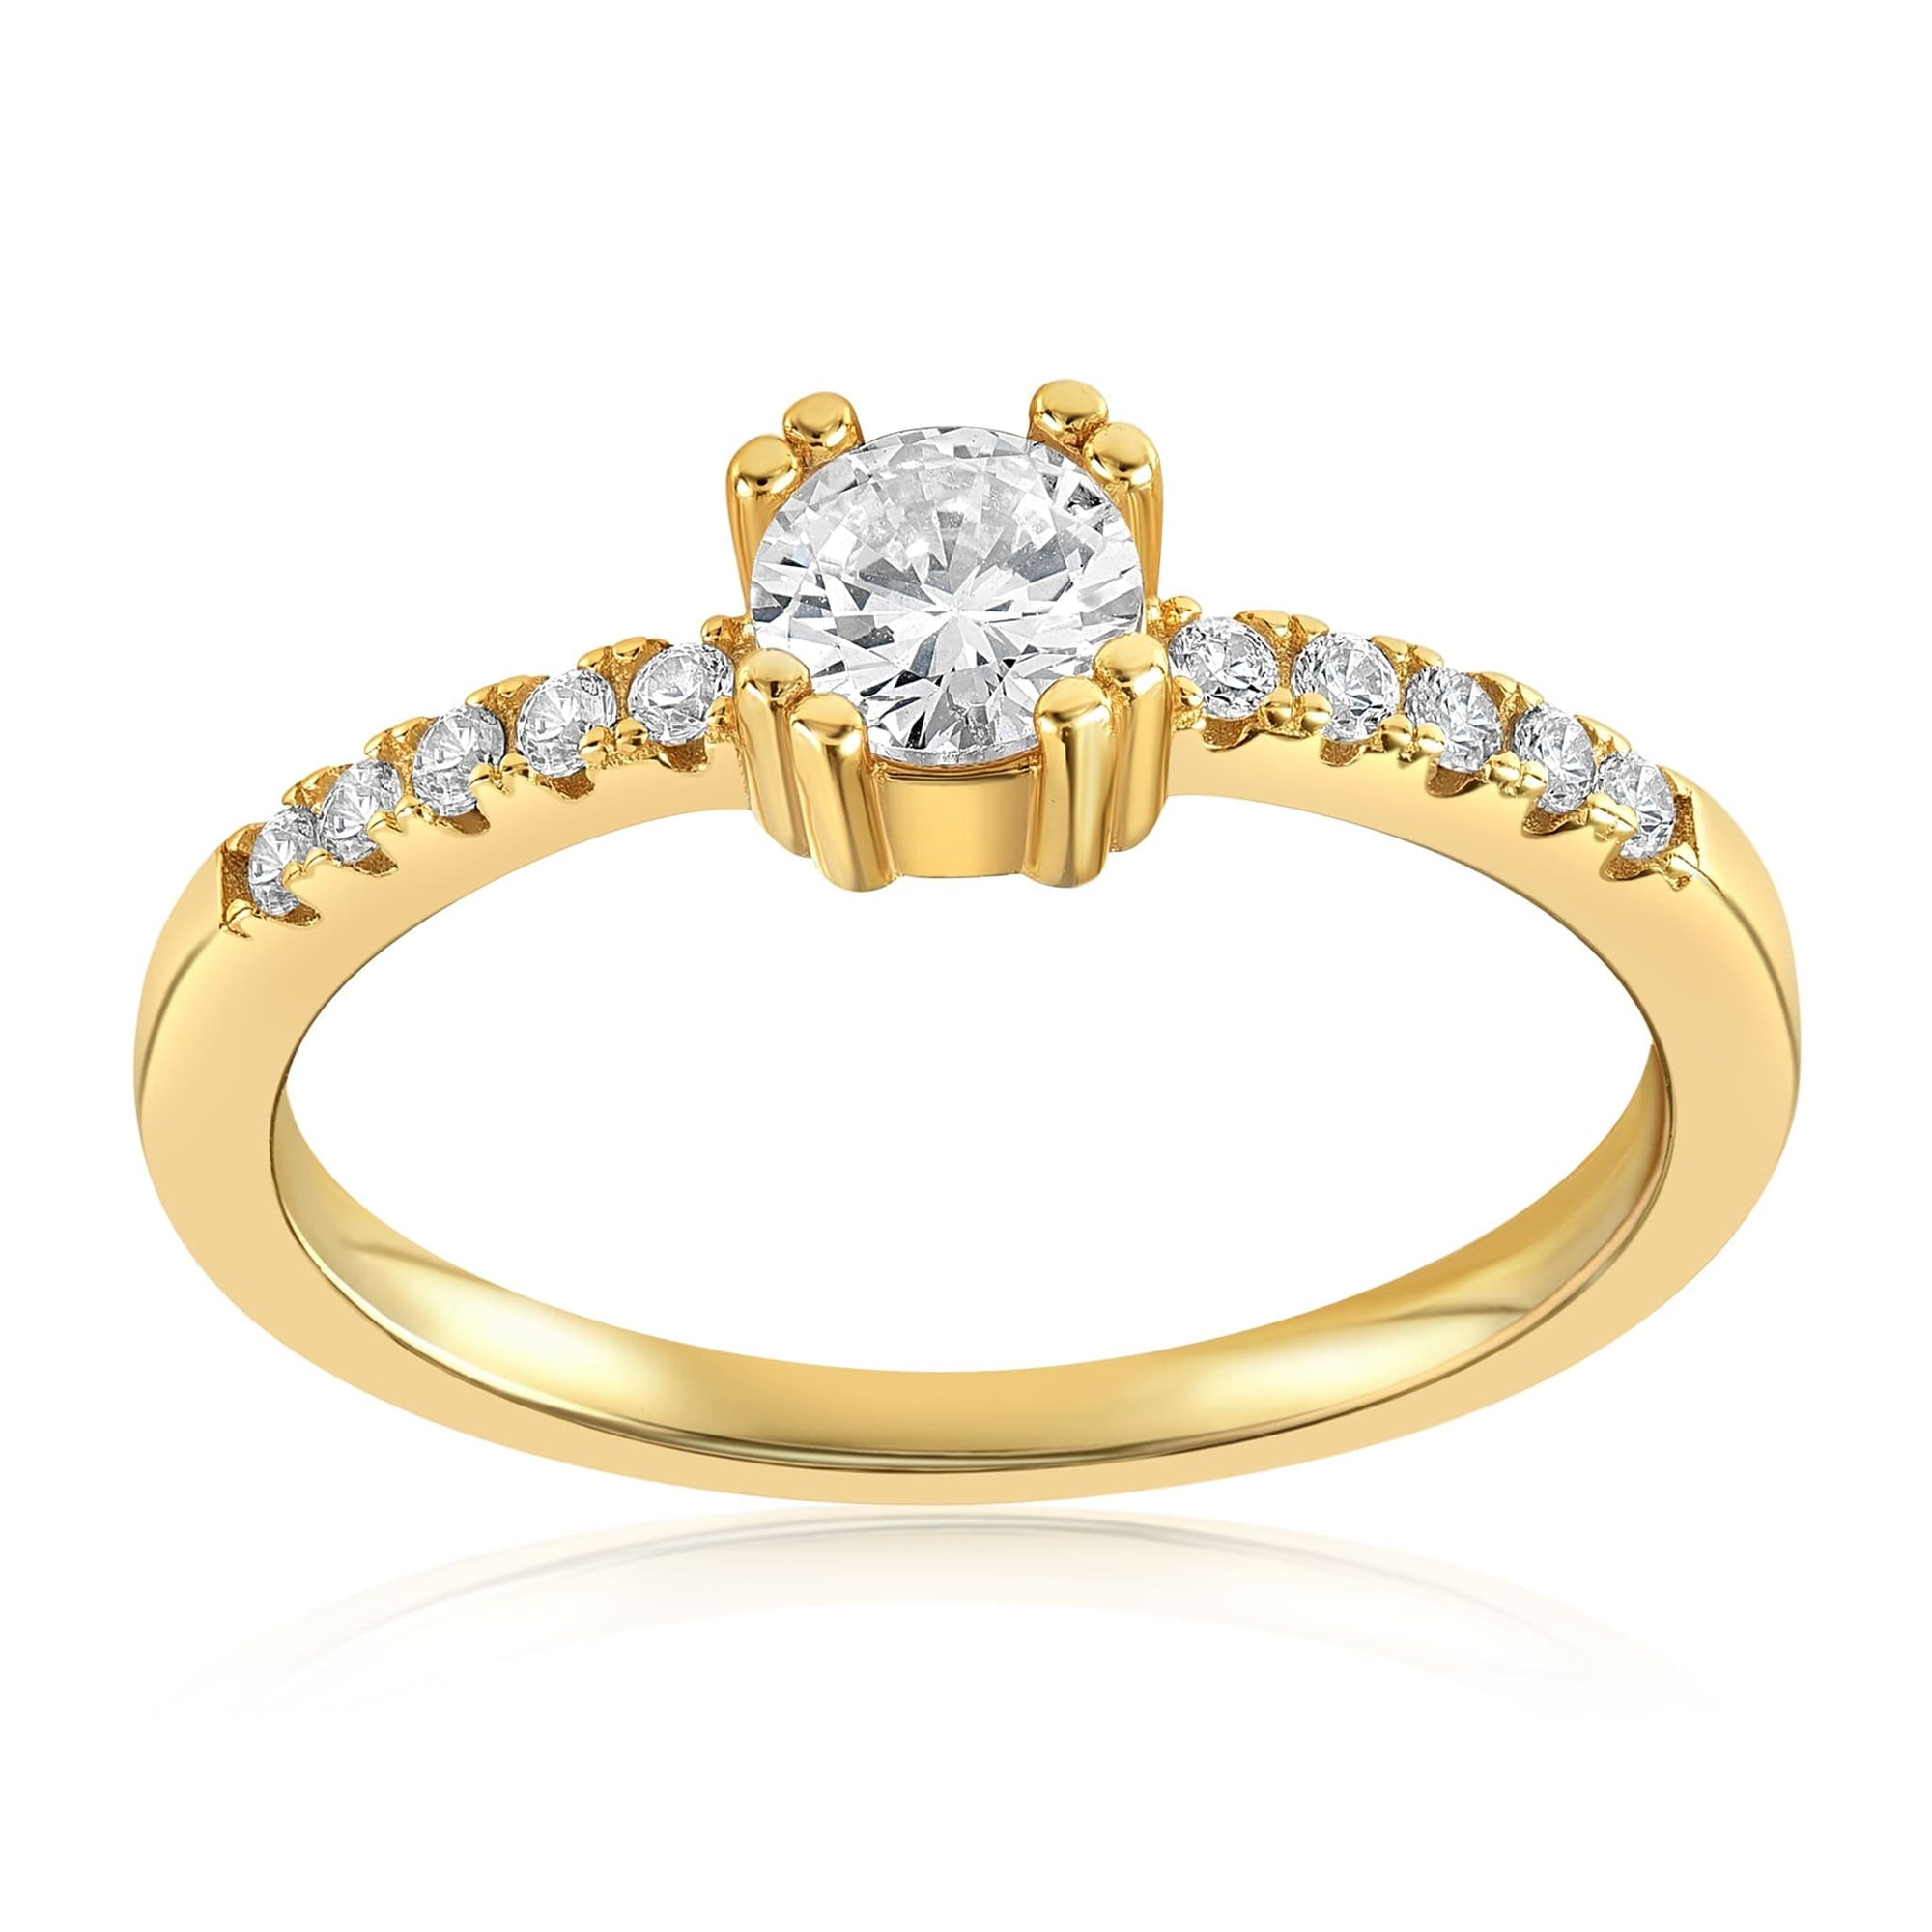 Tianna Sparkle Ring - Front View Facing Up - 18K Yellow Gold Vermeil